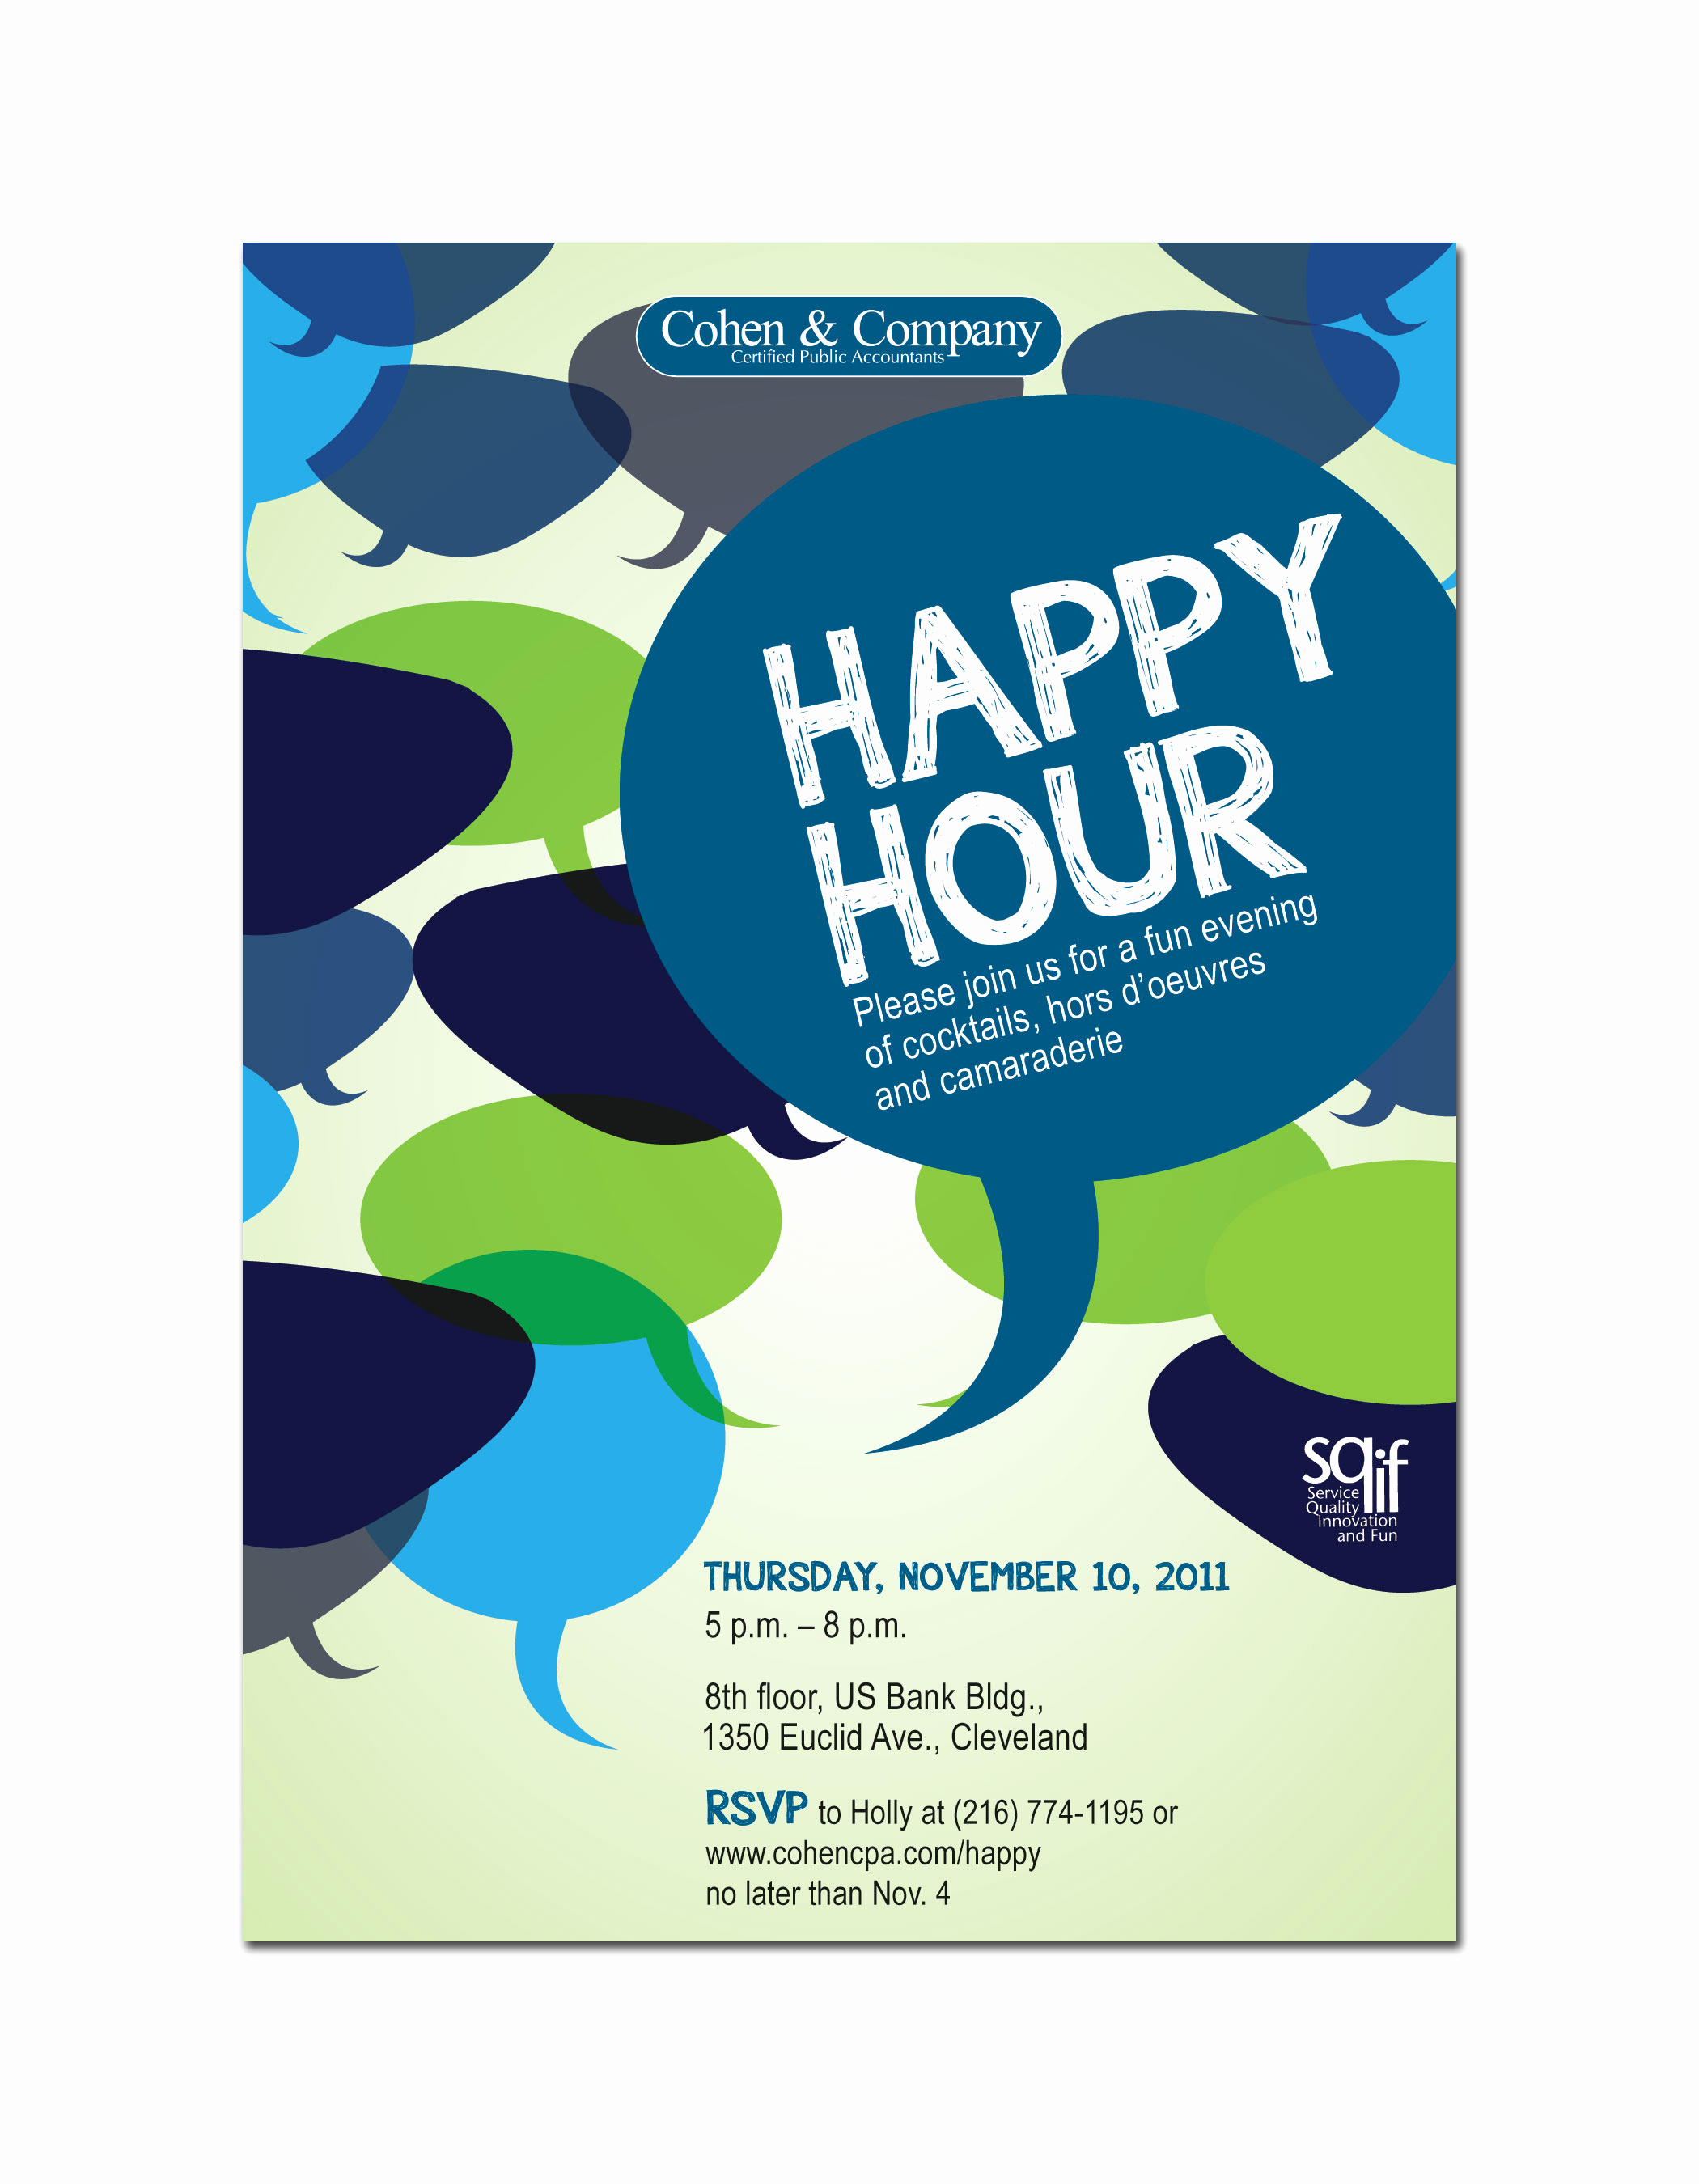 Happy Hour Invitation Wording Awesome Cohen & Pany by Lauren Beck at Coroflot